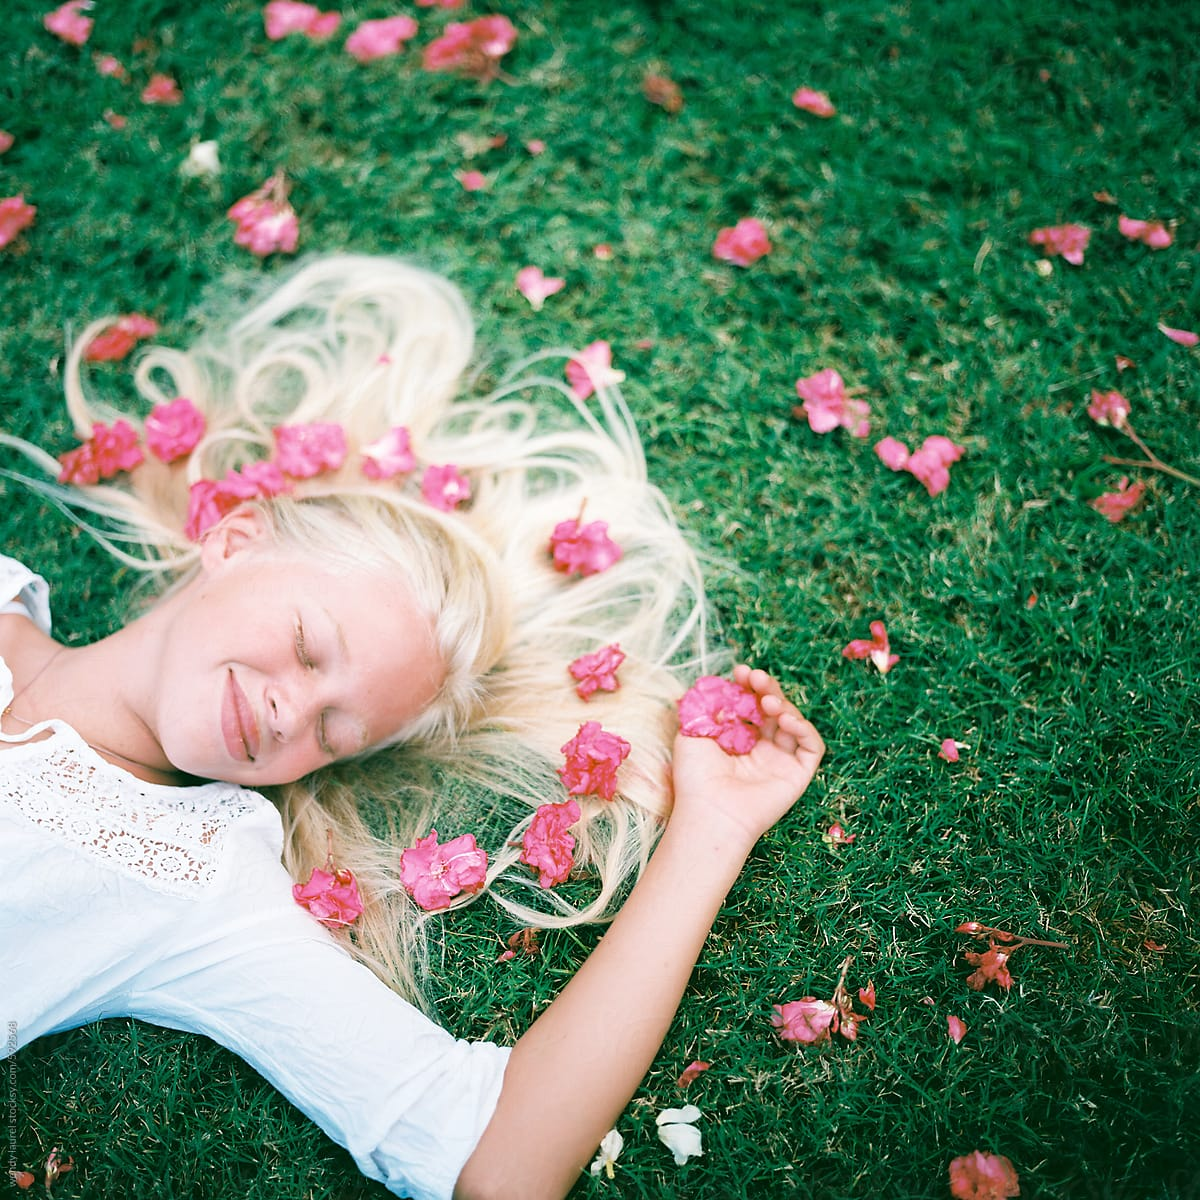 Blonde girl laying in green grass with pink flowers stocksy united blonde girl laying in green grass with pink flowers by wendy laurel for stocksy united mightylinksfo